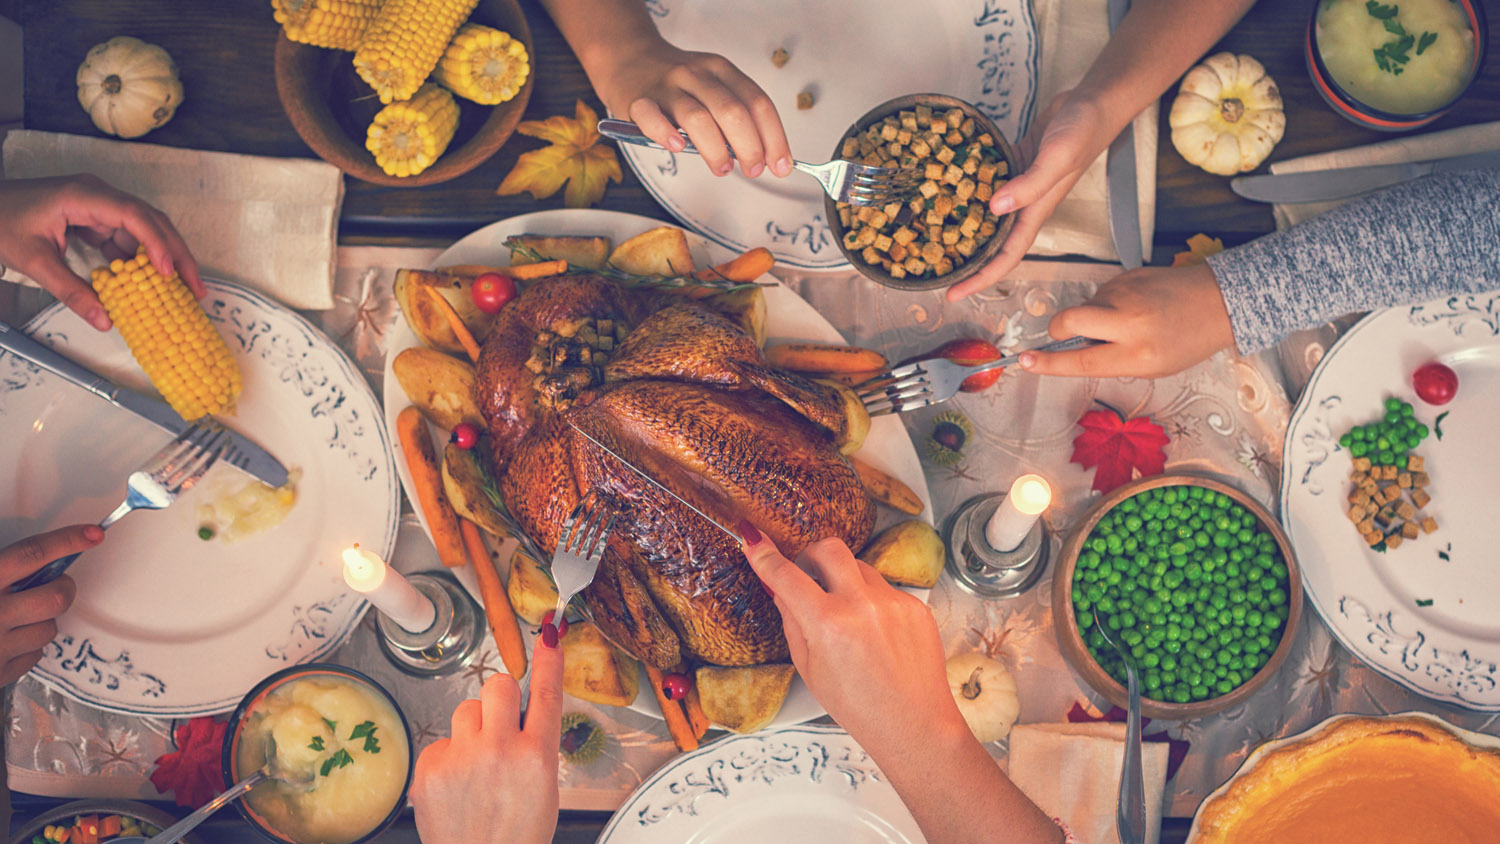 Overhead view of a family celebrating Thanksgiving at the dinner table with a traditional roasted turkey with side dishes